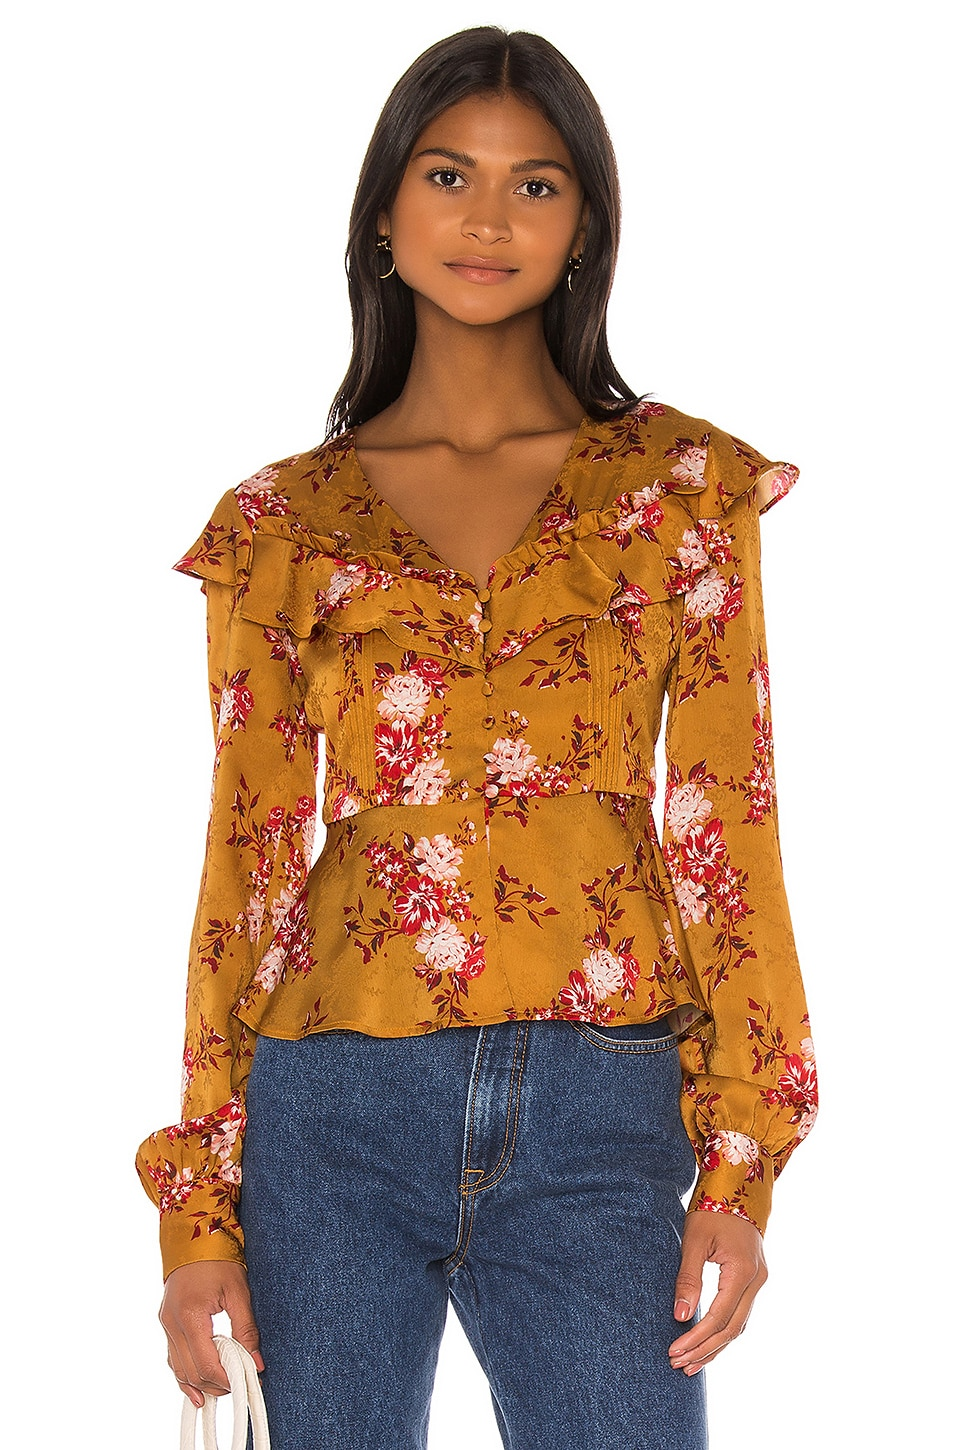 MAJORELLE Broadway Top in Countryside Multi